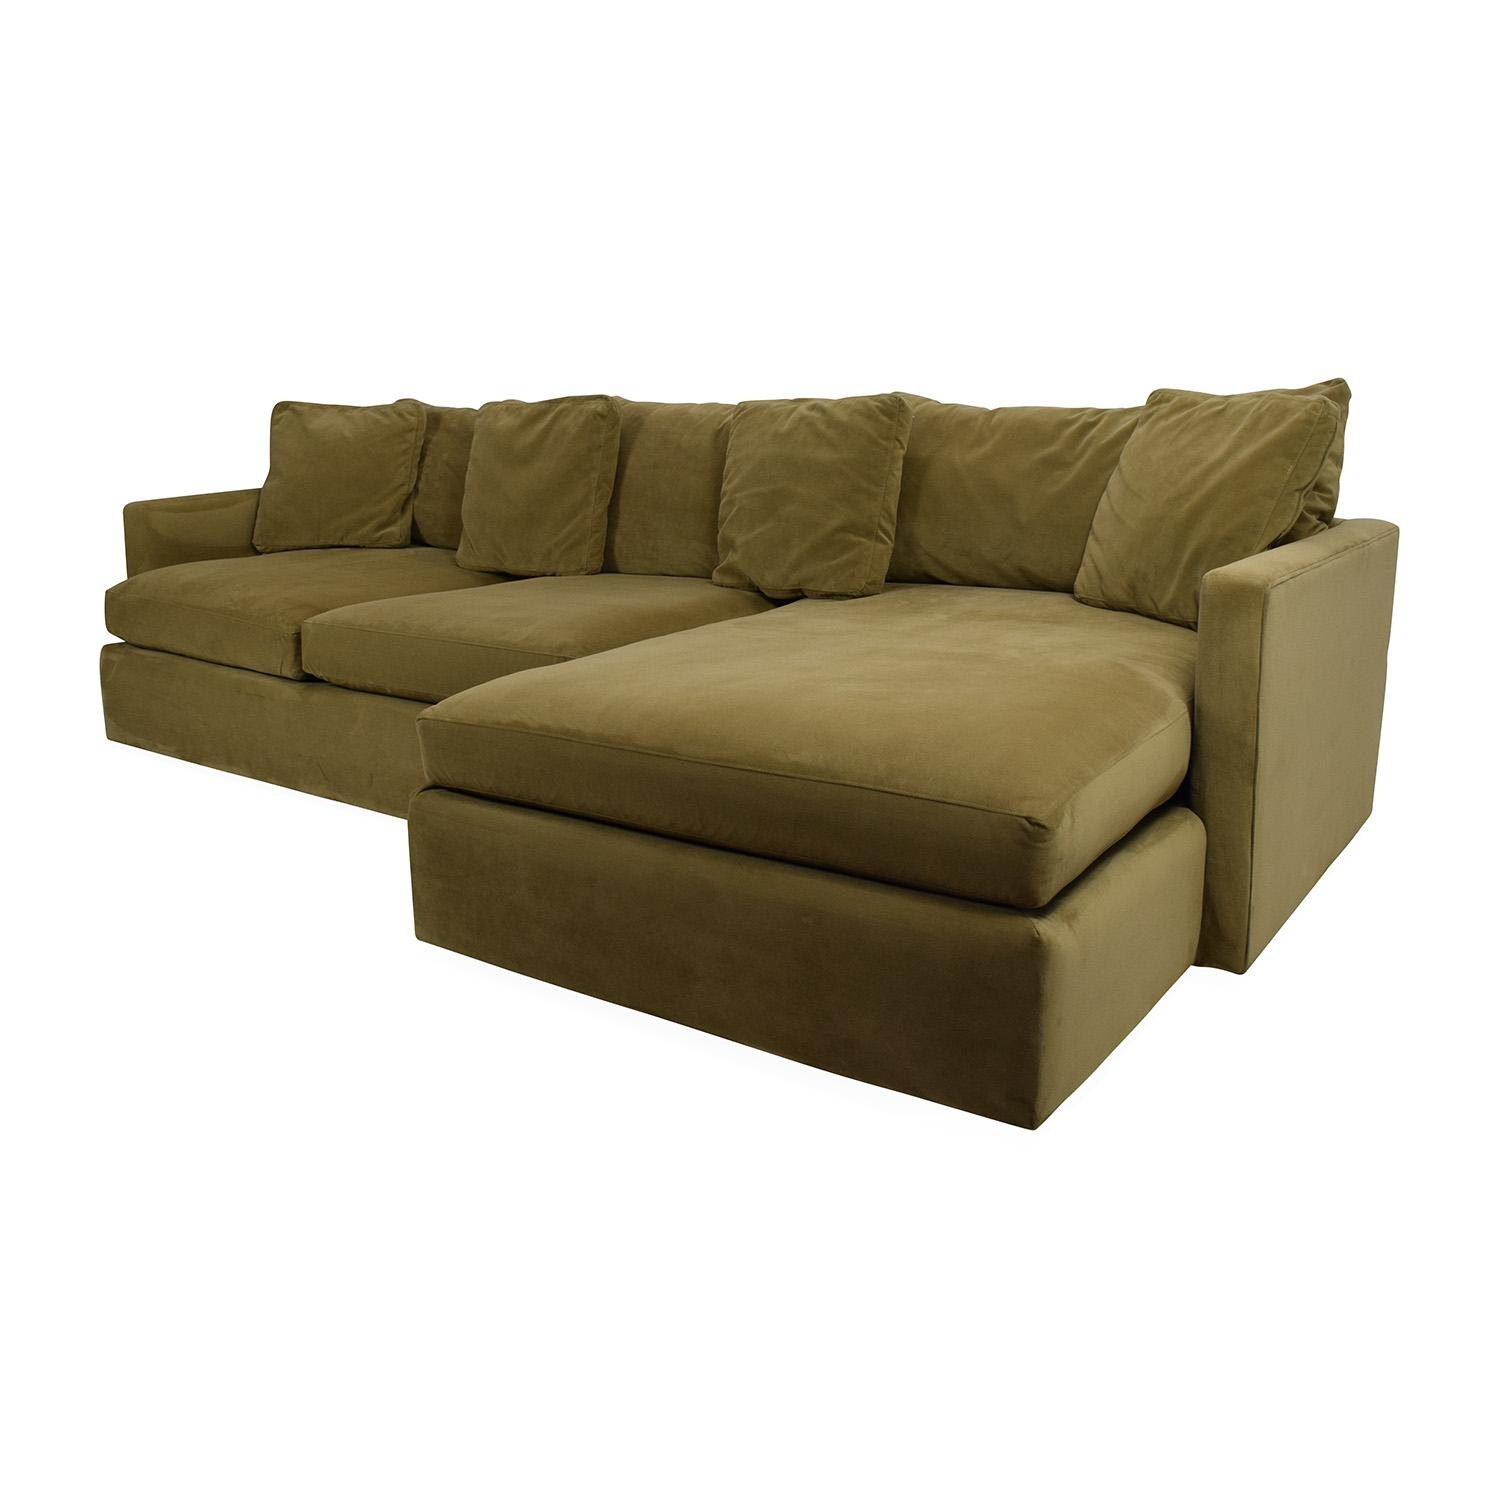 65% Off - Crate And Barrel Crate And Barrel Lounge Ii Sectional intended for Sectional Crate and Barrel